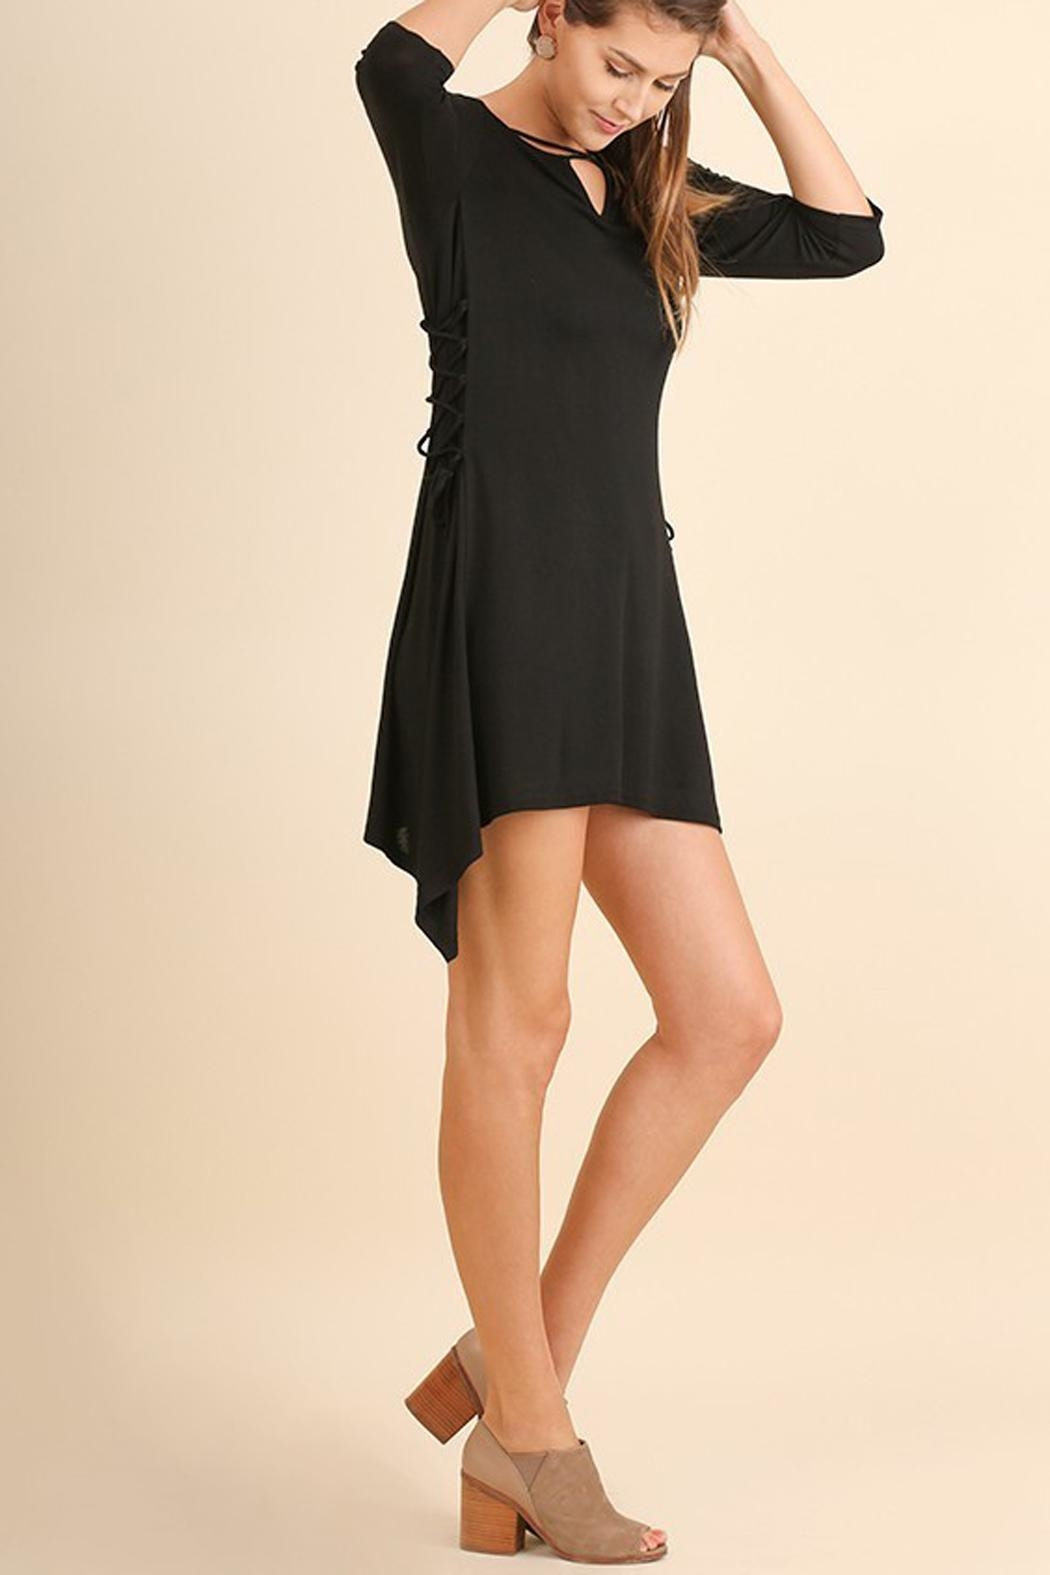 Umgee USA Black Criss-Cross-Tie Tunic - Side Cropped Image